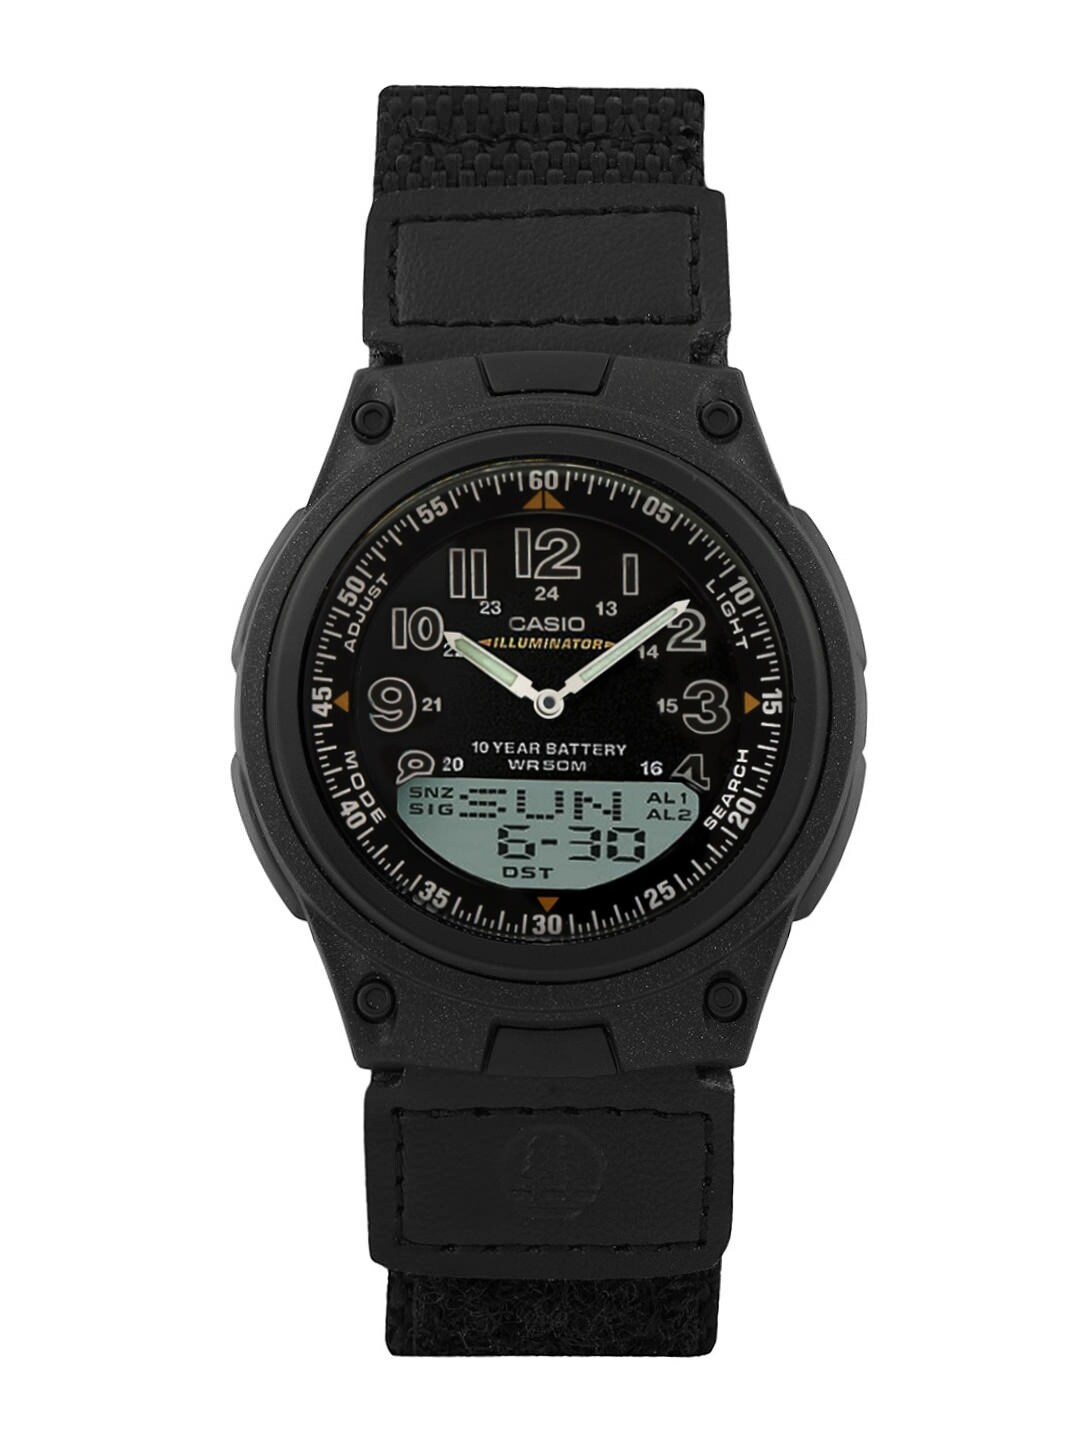 Casio Youth Combination Men Black Analogue-Digital Watches (AD126) AW-80V-1BVDF